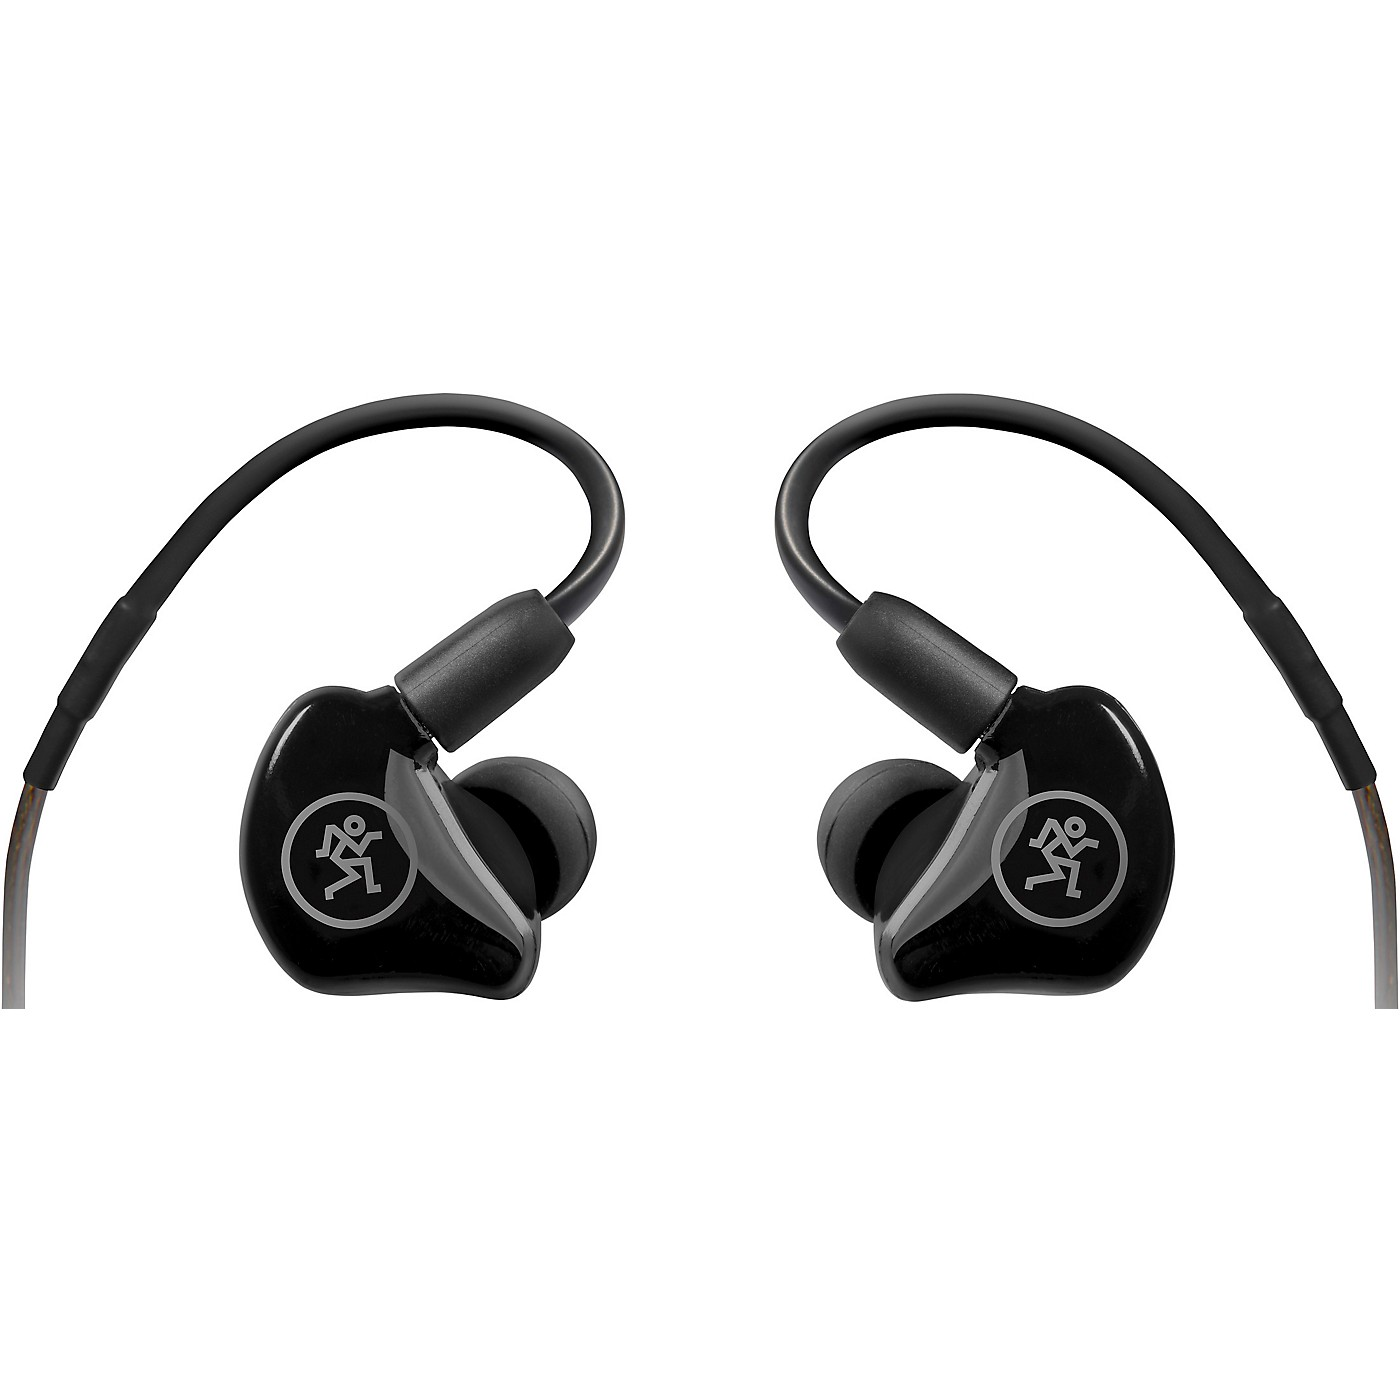 Mackie MP-240 BTA Dual Hybrid Driver In-Ear Monitors with Bluetooth Adapter thumbnail